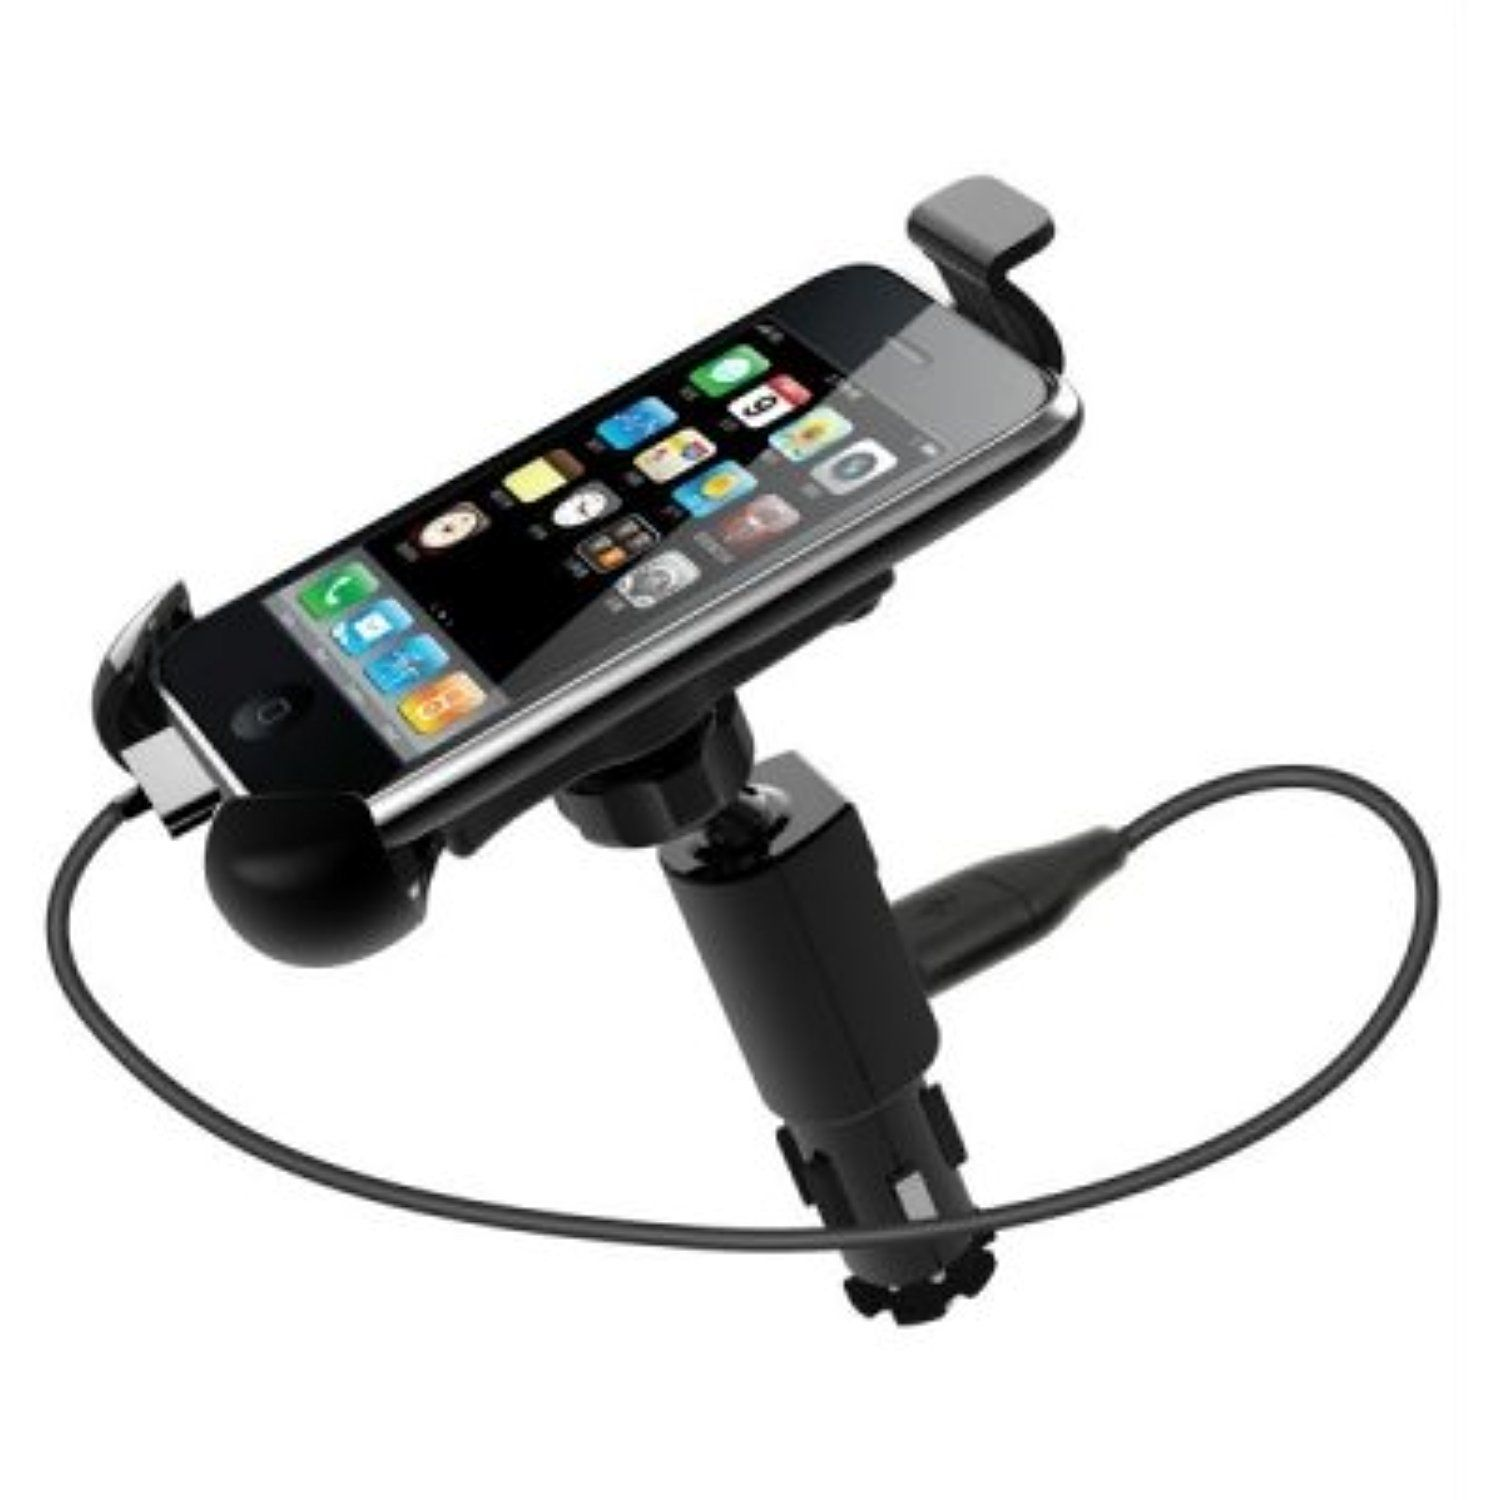 small resolution of car gadgets 360 degree rotary universal car mounter holder cigarette lighter charger for smart phone black click image to review more details